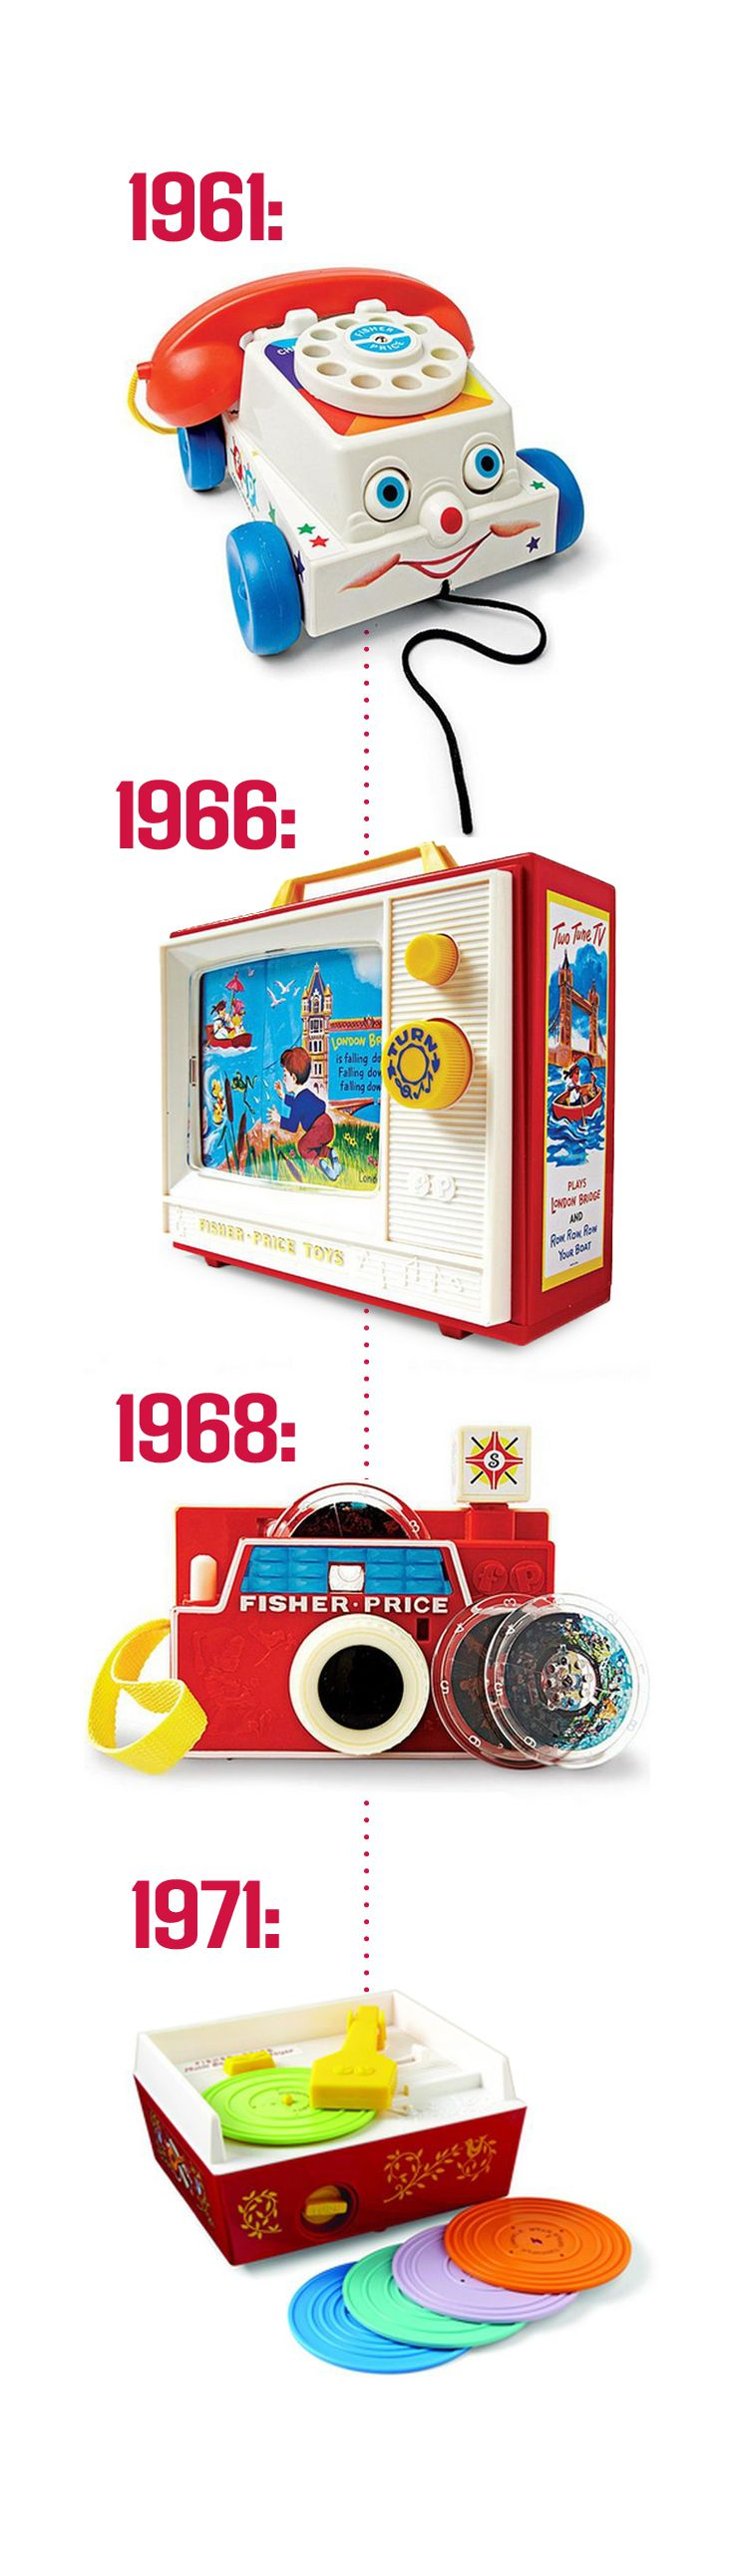 Retro Toys through the ages